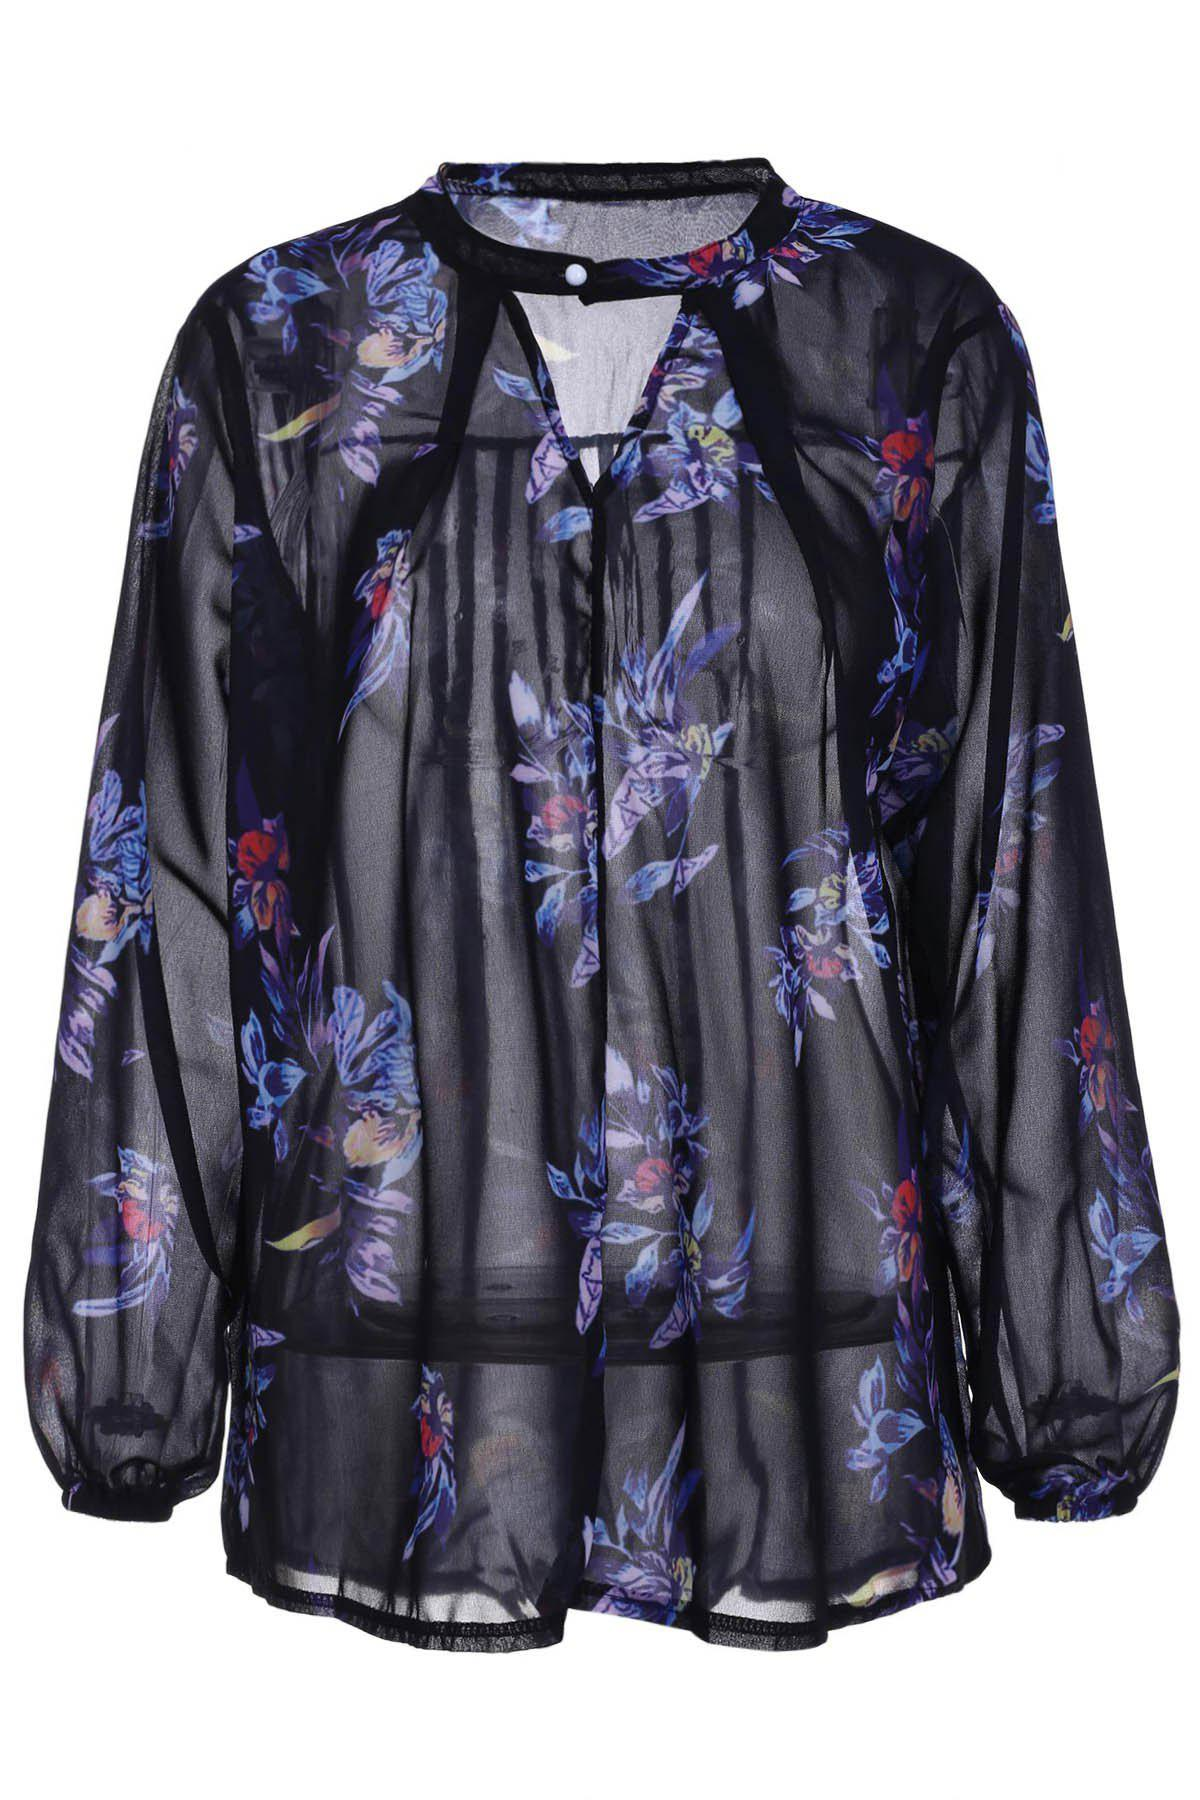 Stylish Long Sleeve Keyhole Neck Floral Print Women's Chiffon Blouse - COLORMIX S